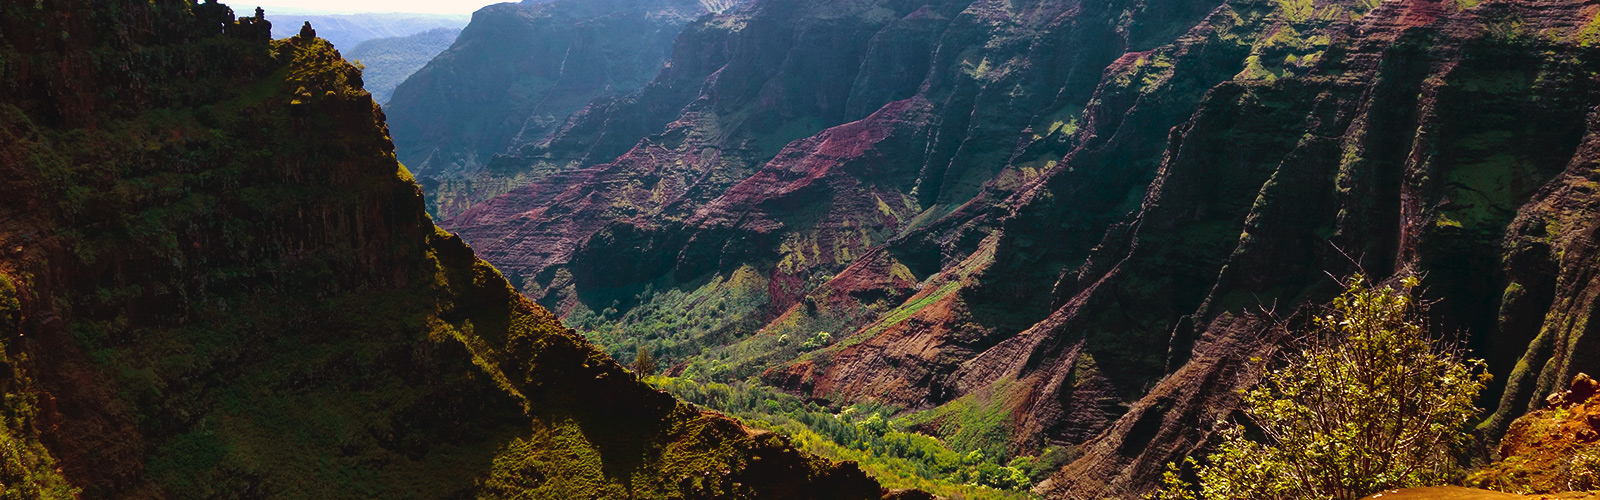 Tips for Hiking the Waimea Canyon Trail – Kauai